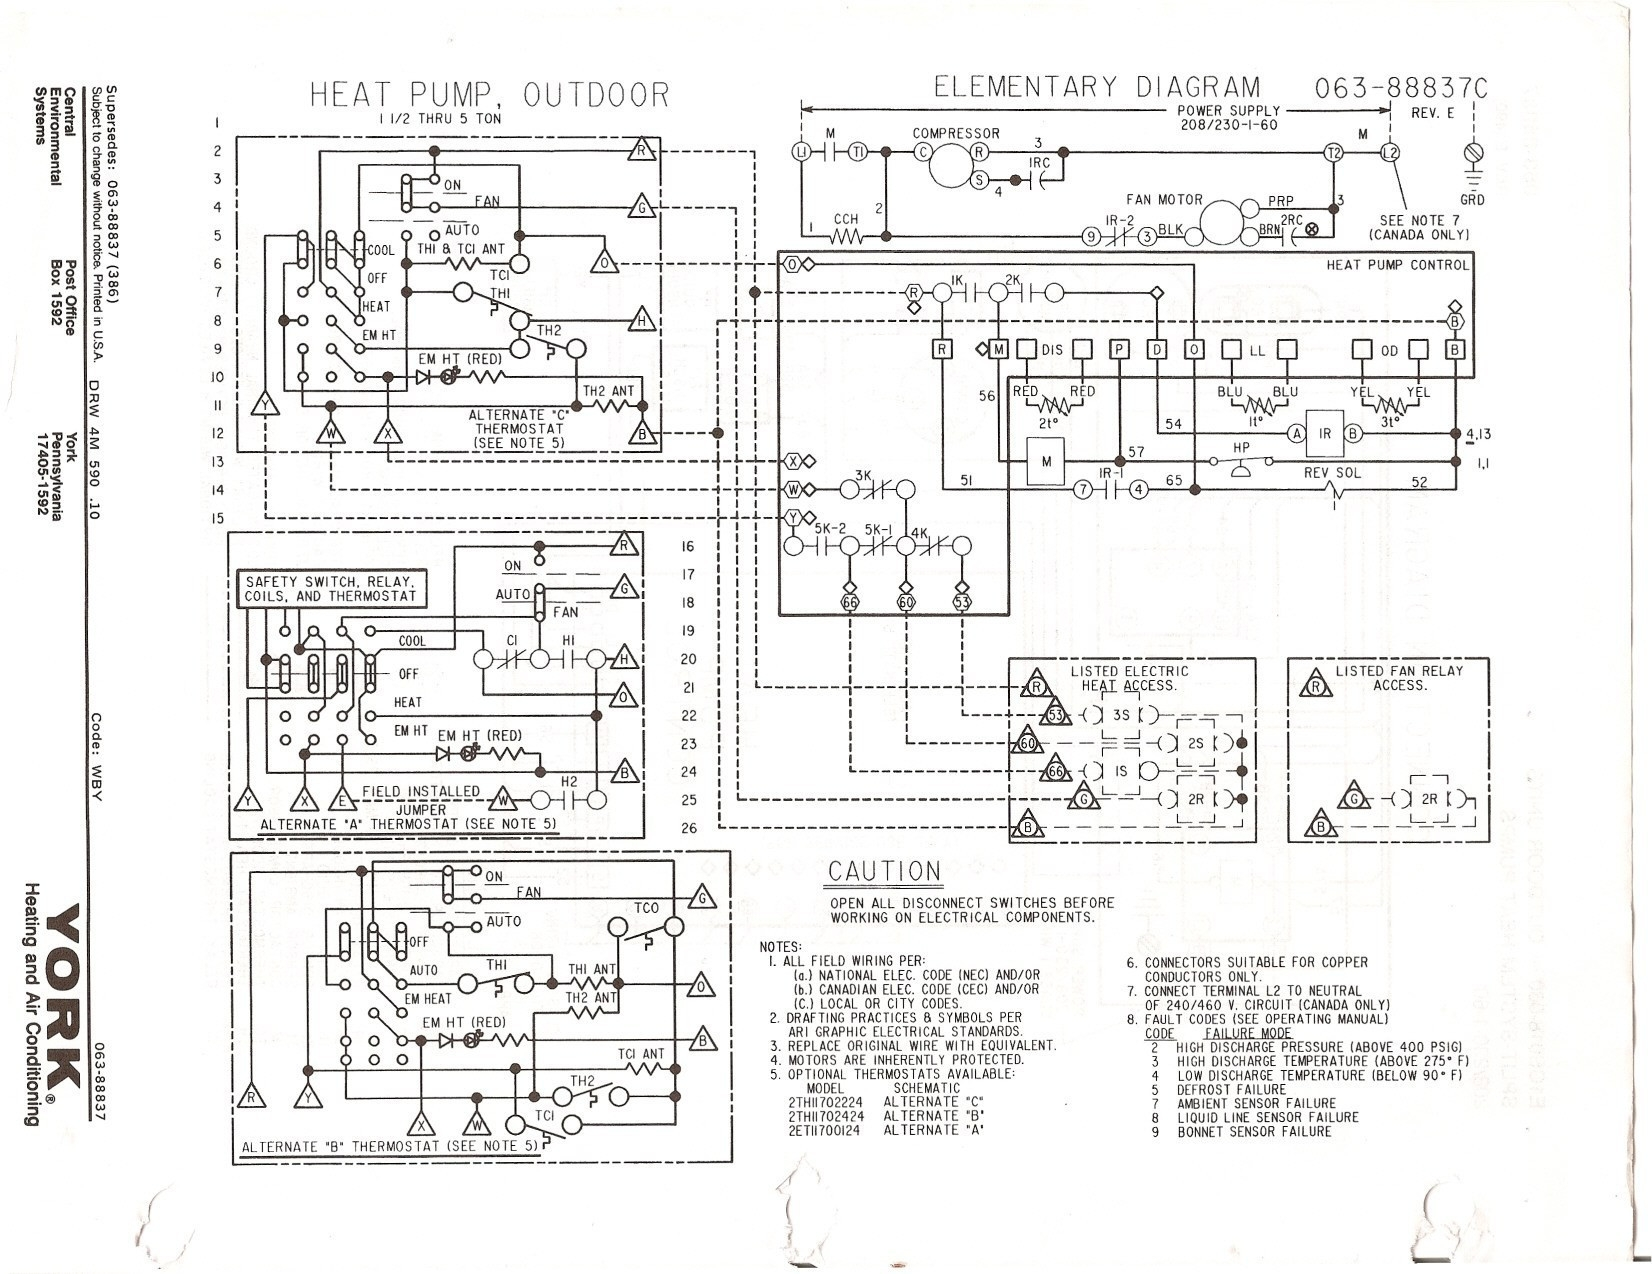 york defrost board wiring diagram icp heat pump defrost board wiring diagram for model for phm342kooa goodman defrost board wiring diagram | free wiring diagram